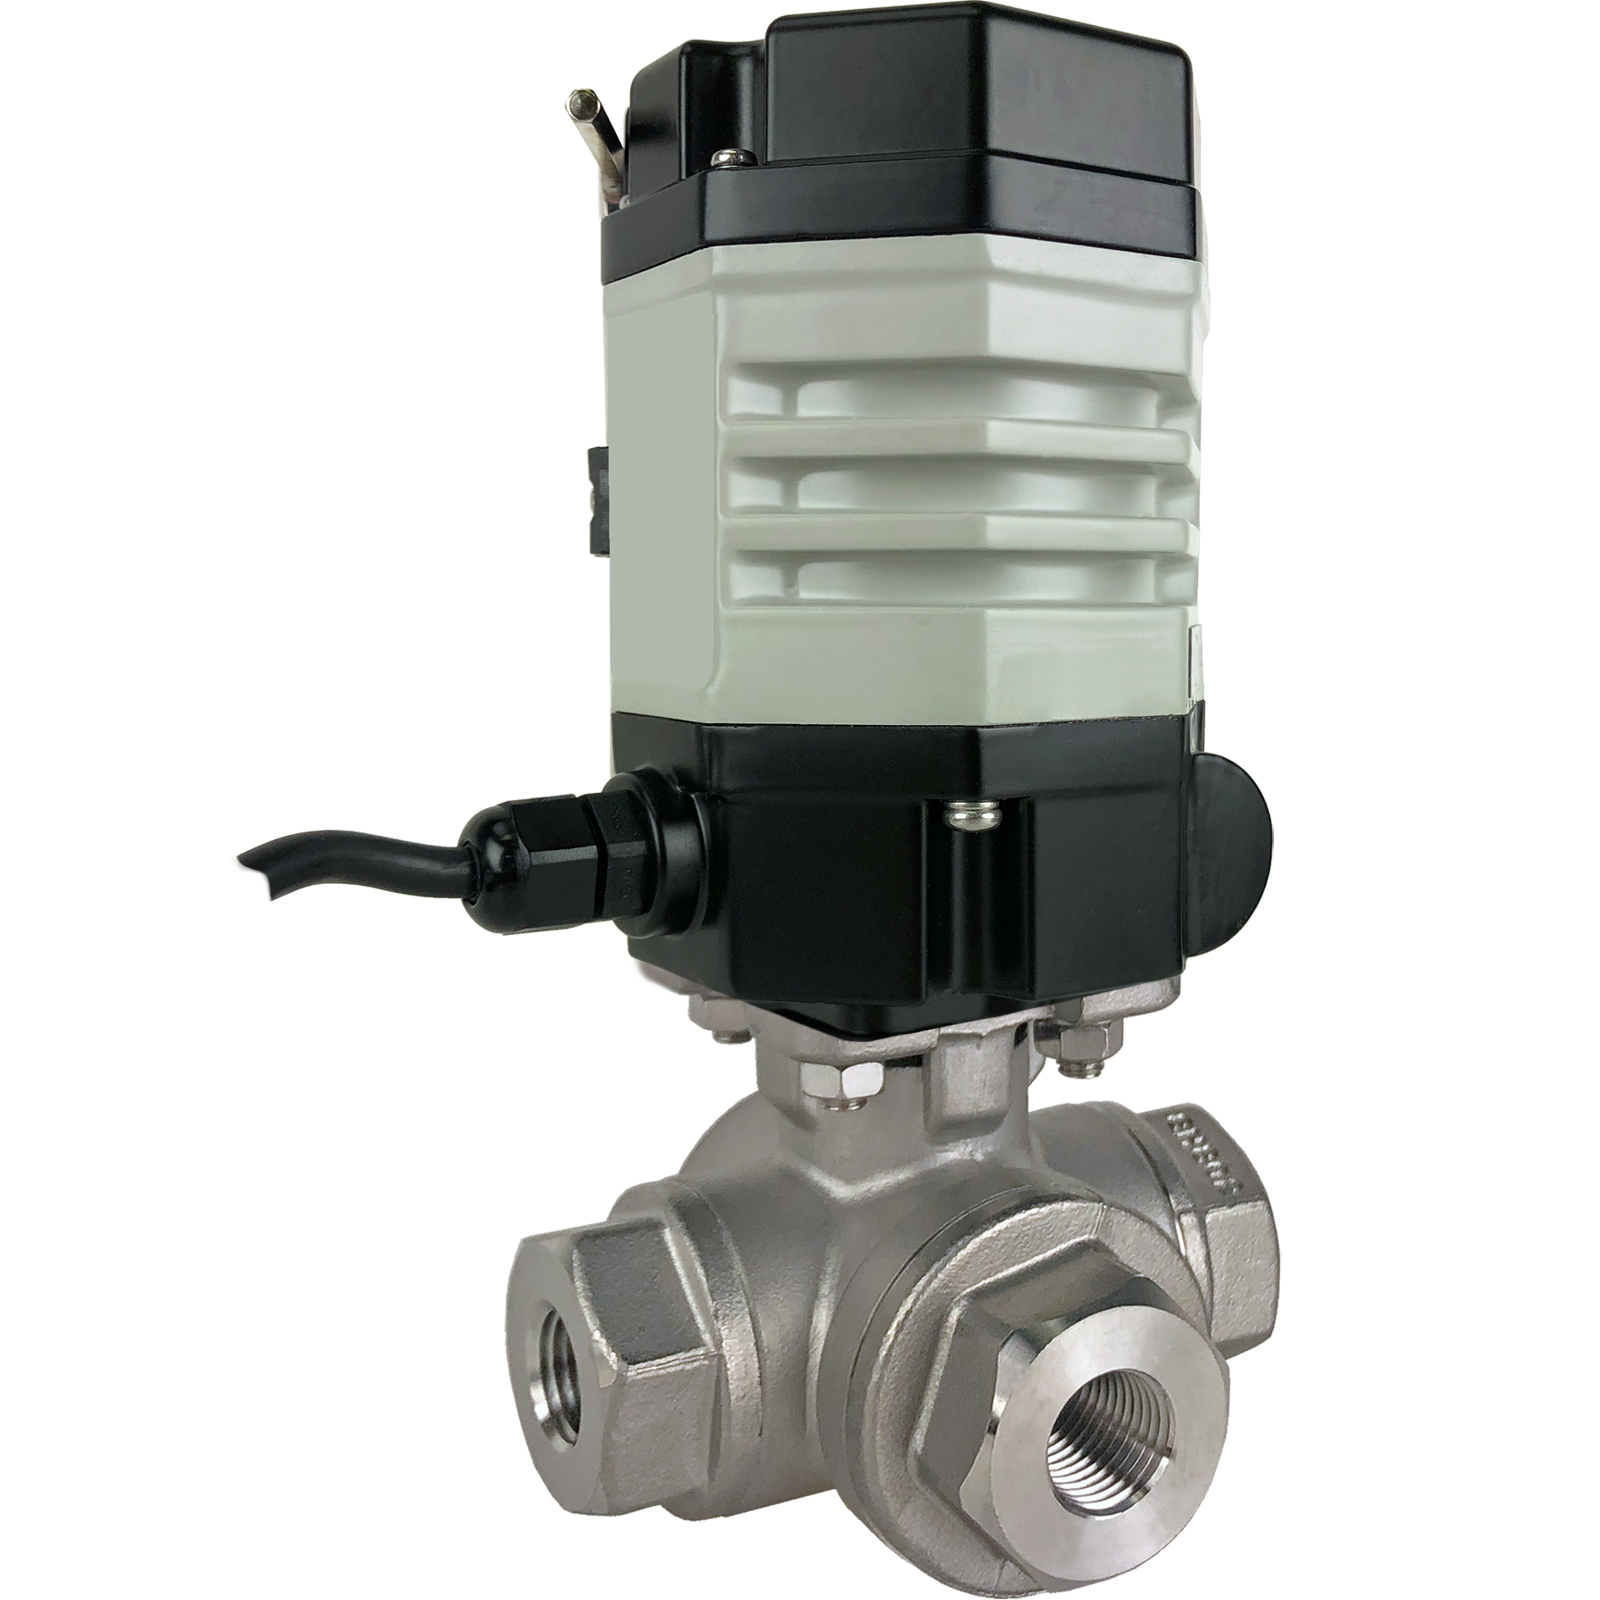 """1/4"""" Compact Electric 3-Way Stainless L-Diverter Valve 110 VAC"""